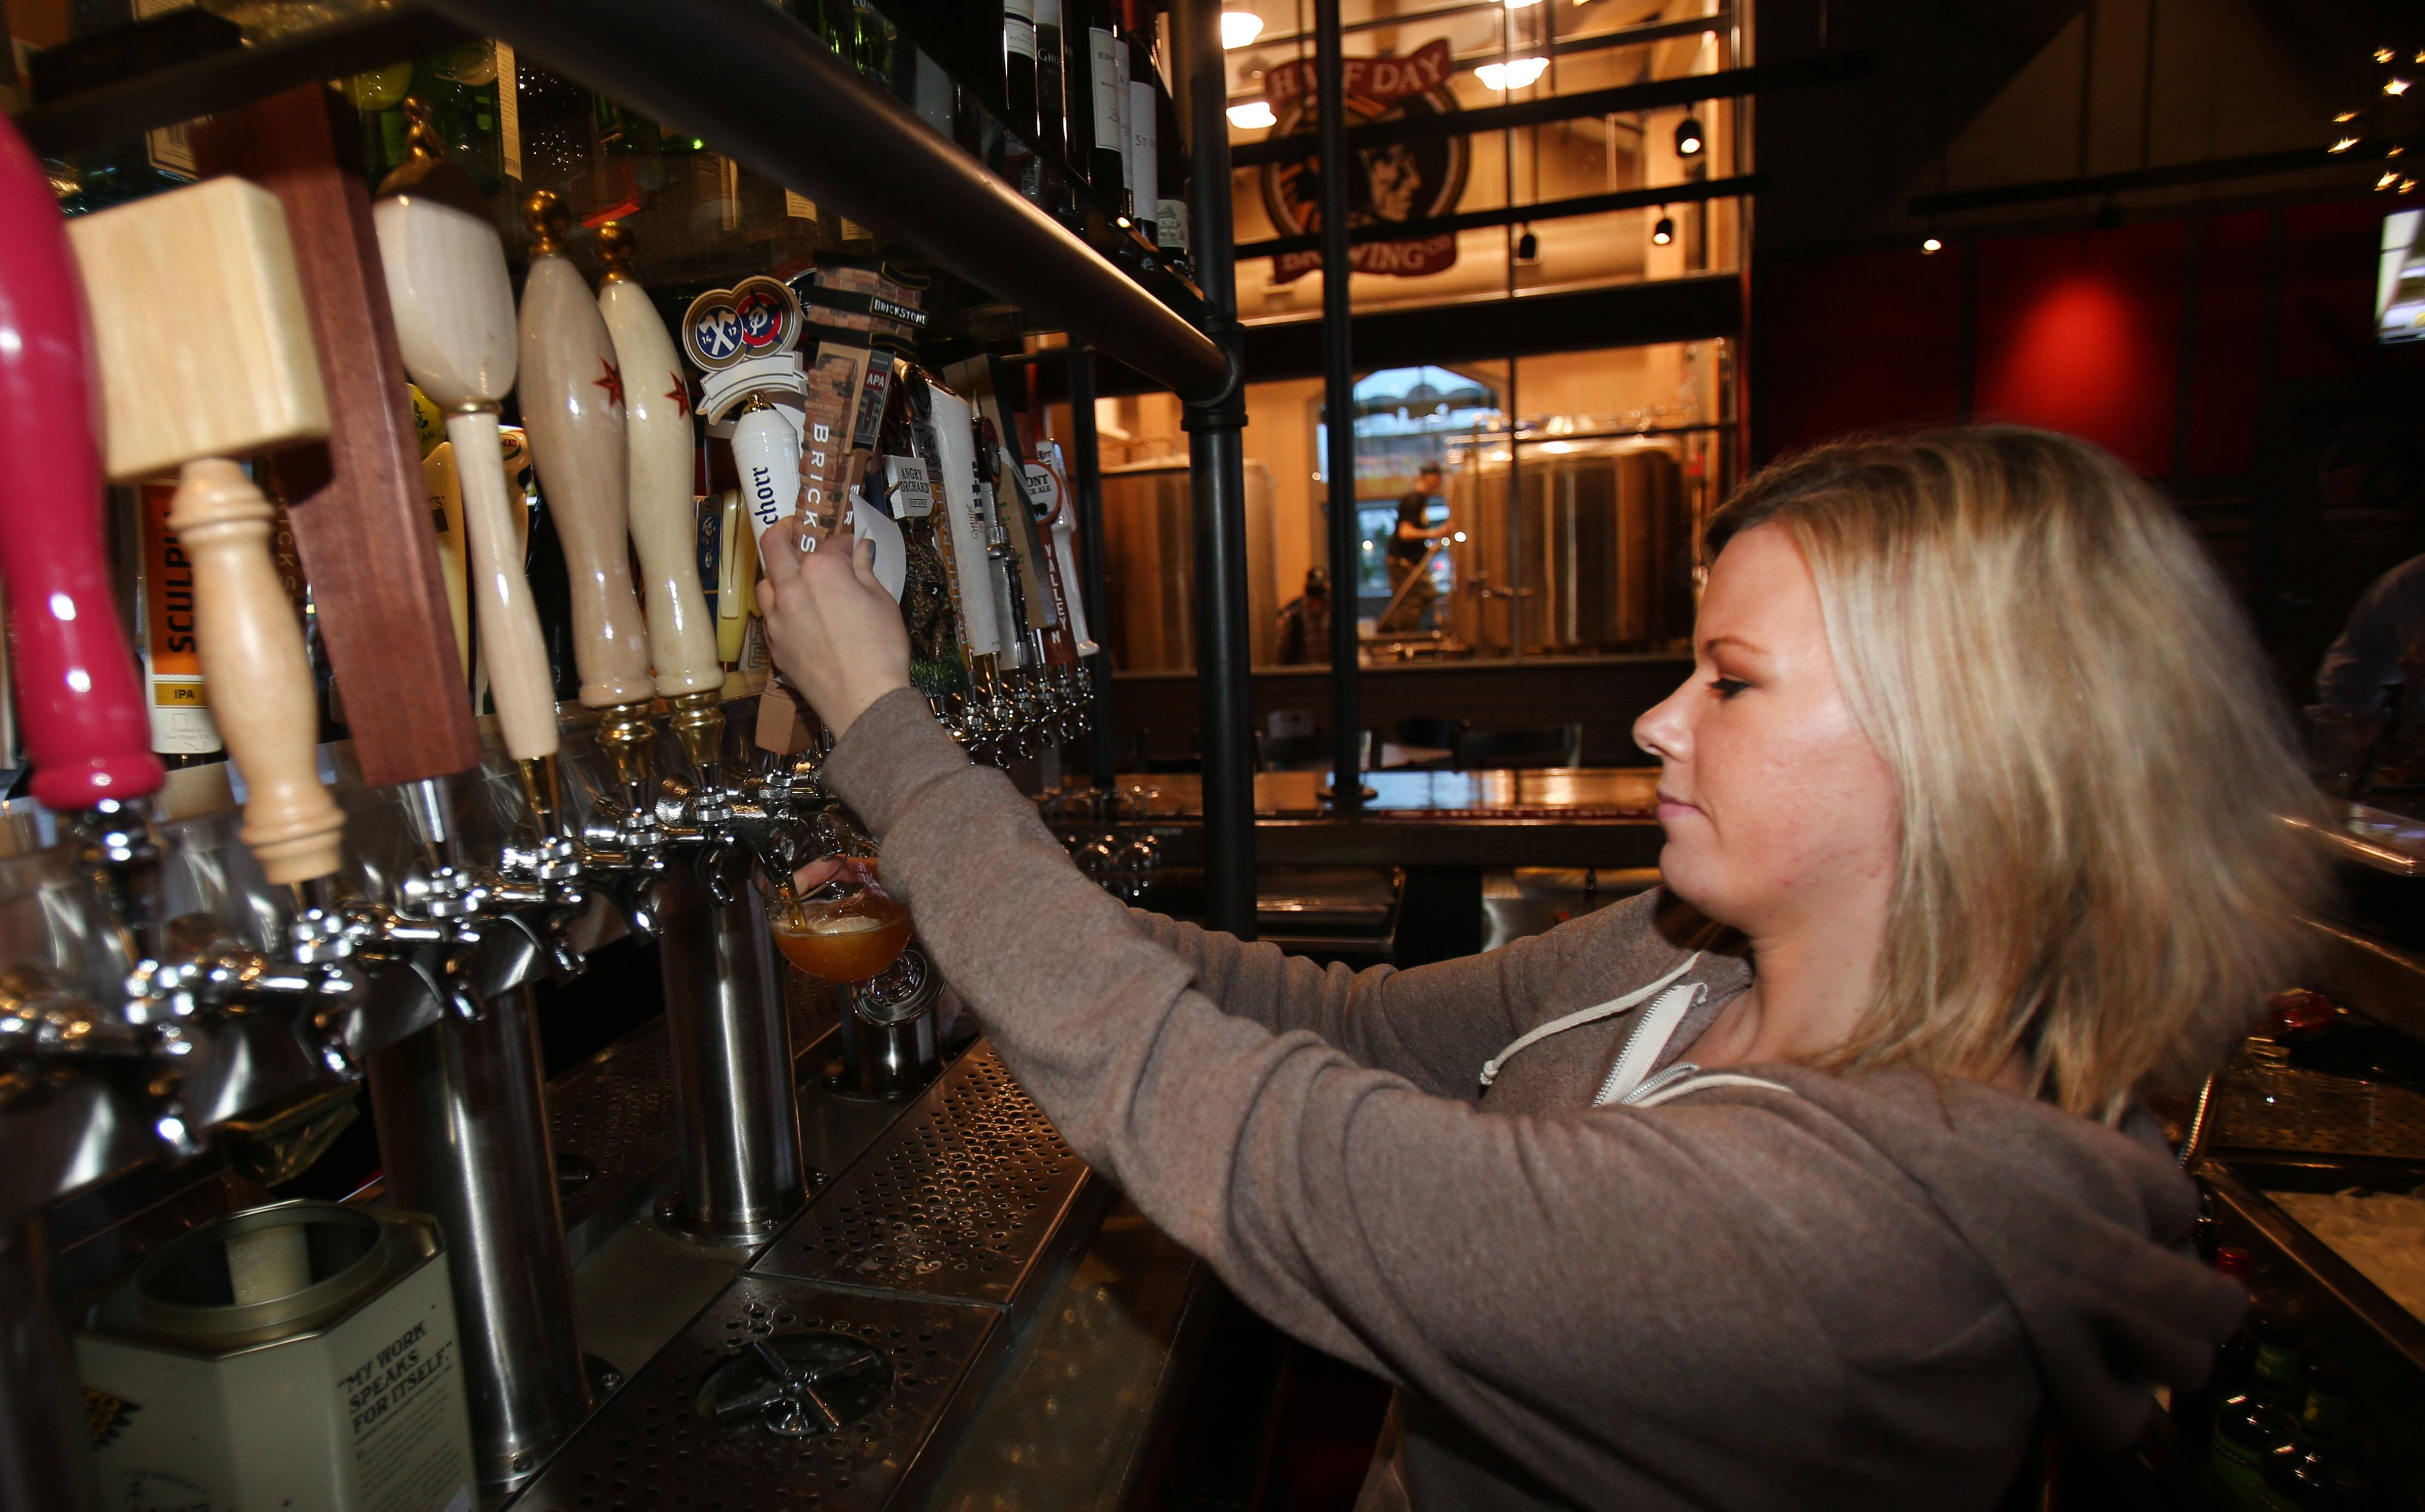 Bartender Amanda McDuffie pours a beer at Half Day Brewing Company in Lincolnshire. The establishment is among those tourism officials hope will draw visitors to Lake County.